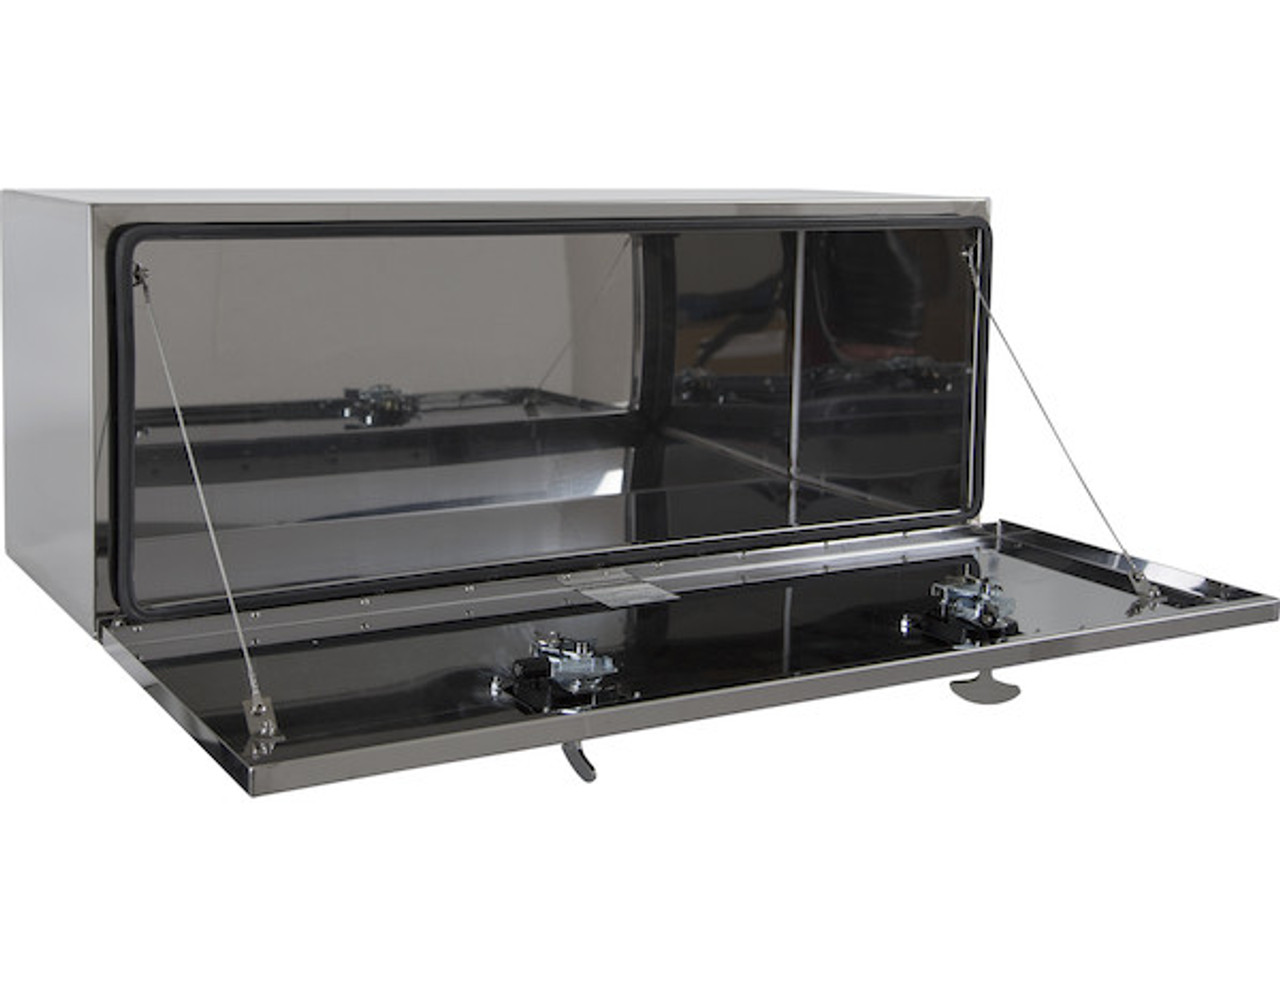 1702660 BUYERS PRODUCTS STAINLESS STEEL UNDERBODY TRUCK BOX TOOLBOX